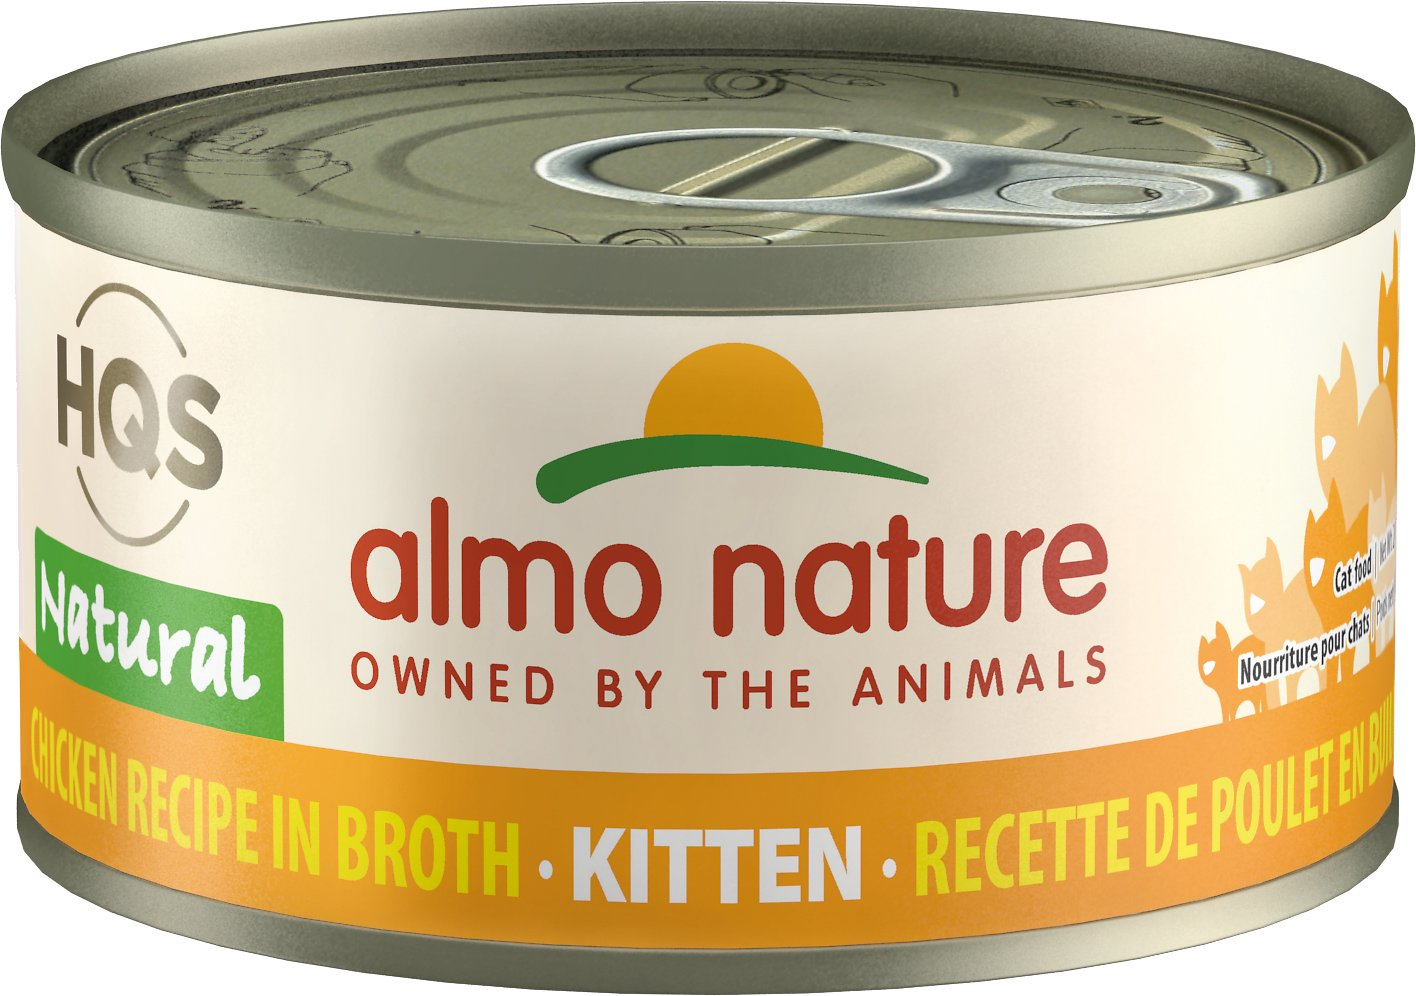 Almo Nature HQS Natural Chicken Recipe Kitten Canned Cat Food, 2.47-oz